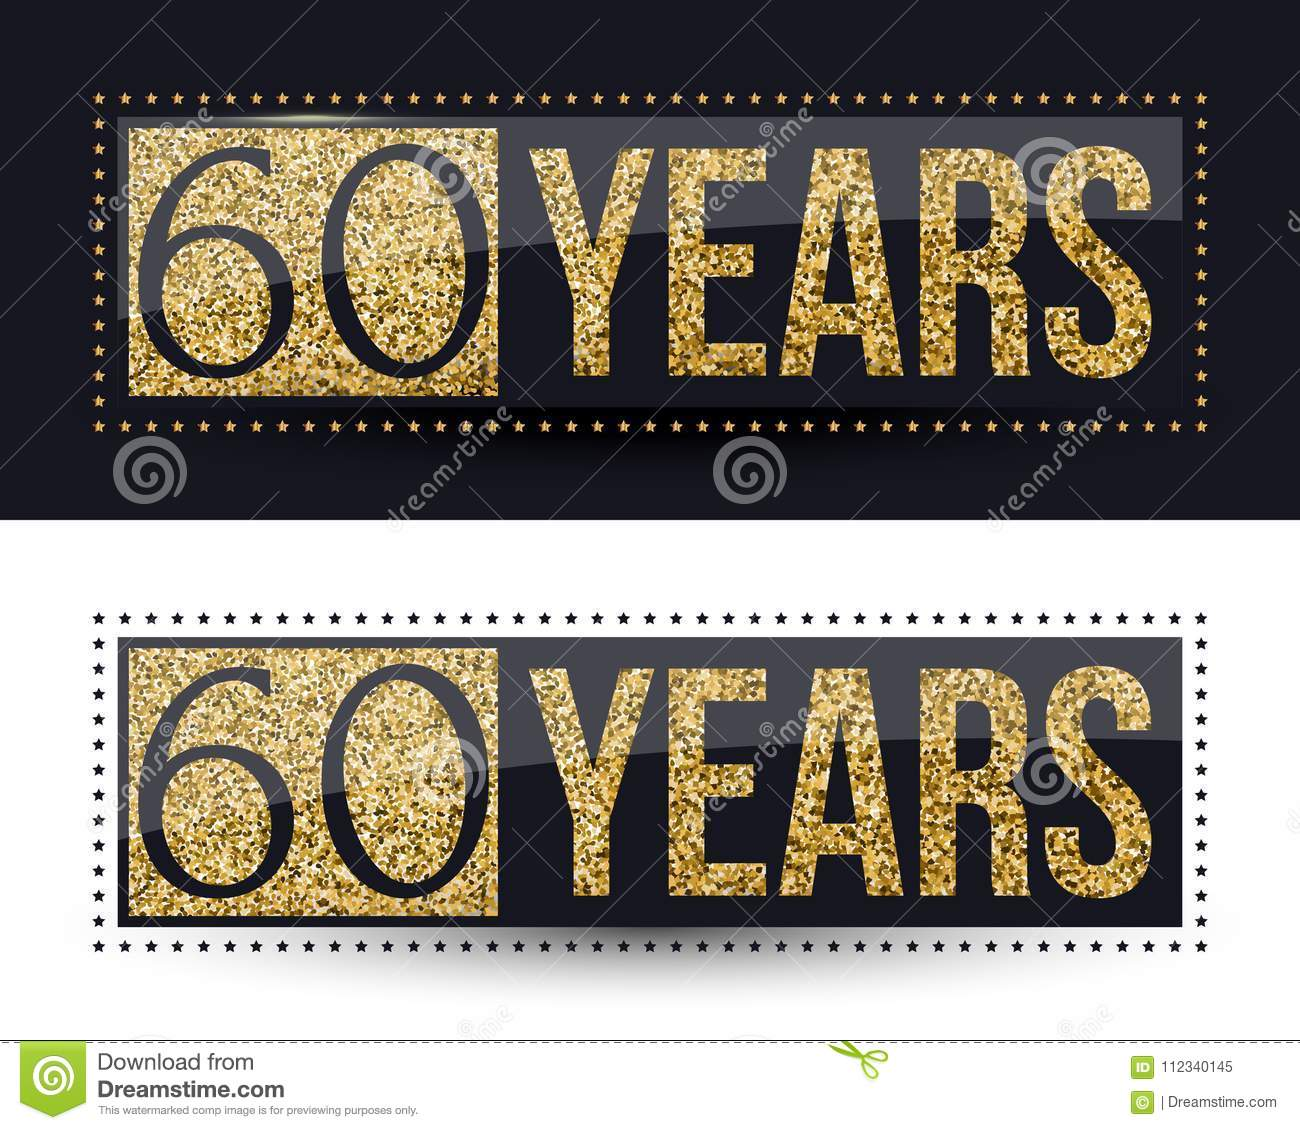 60 years anniversary gold banner on dark and white backgrounds.